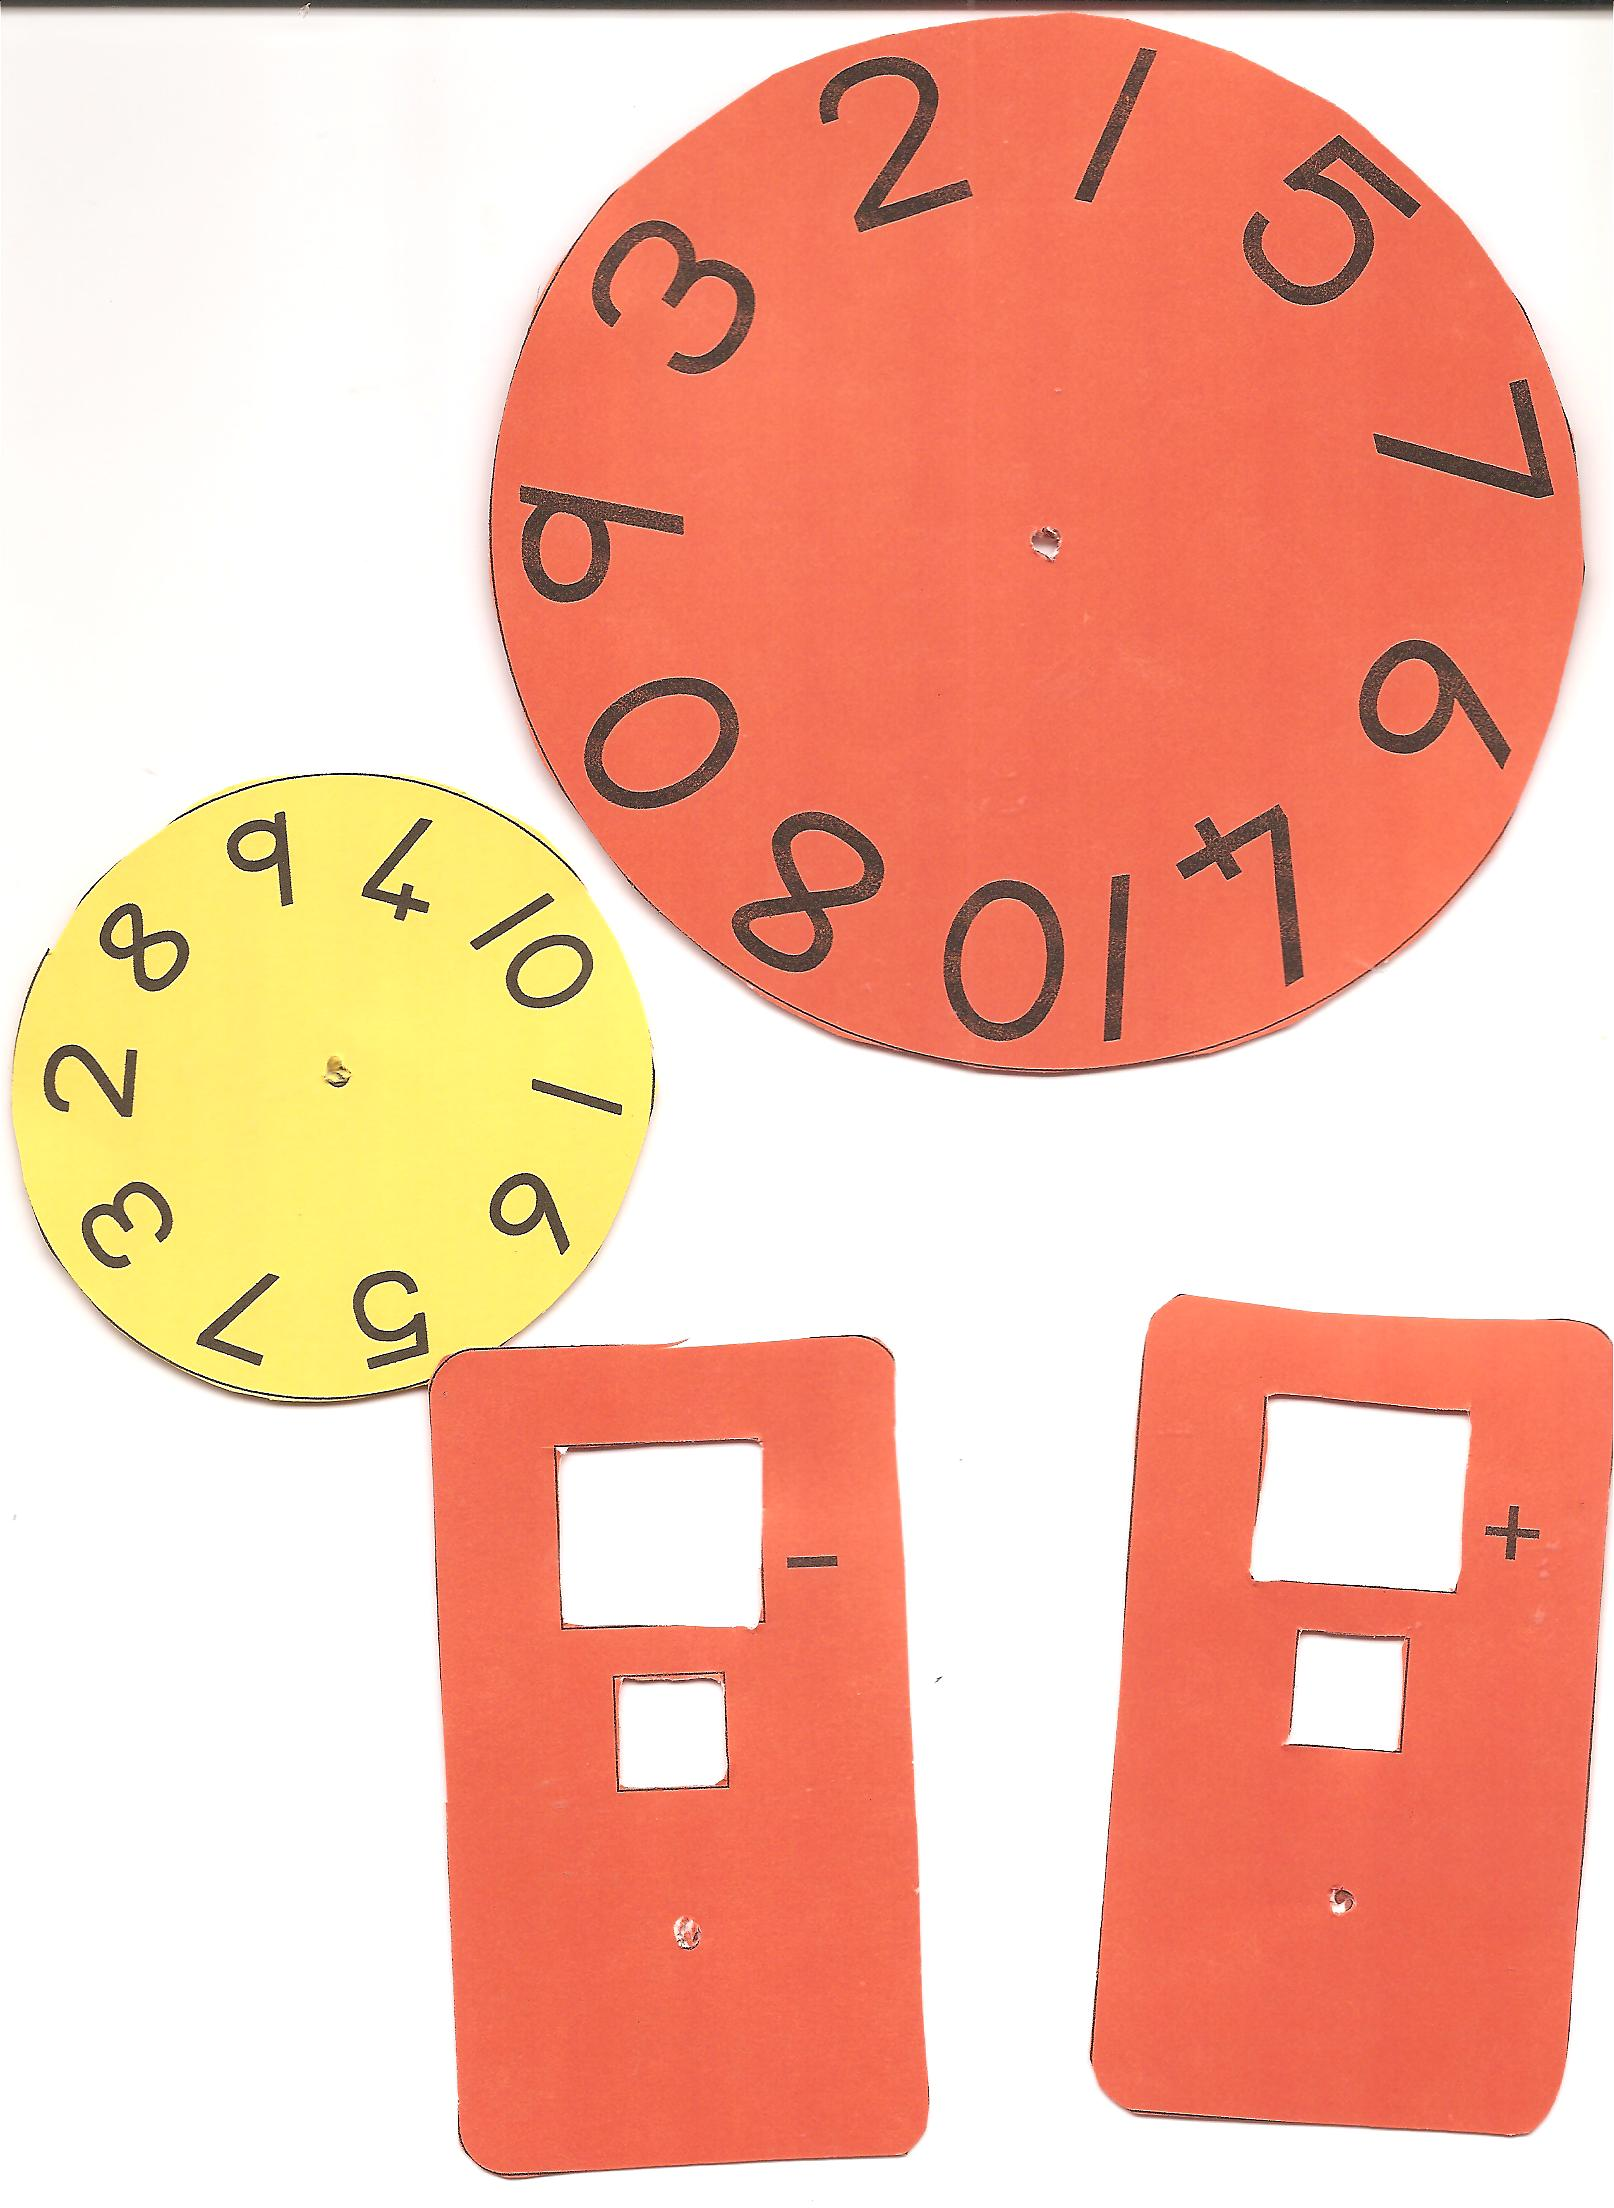 Maths Manipulatives Makes Maths Fun